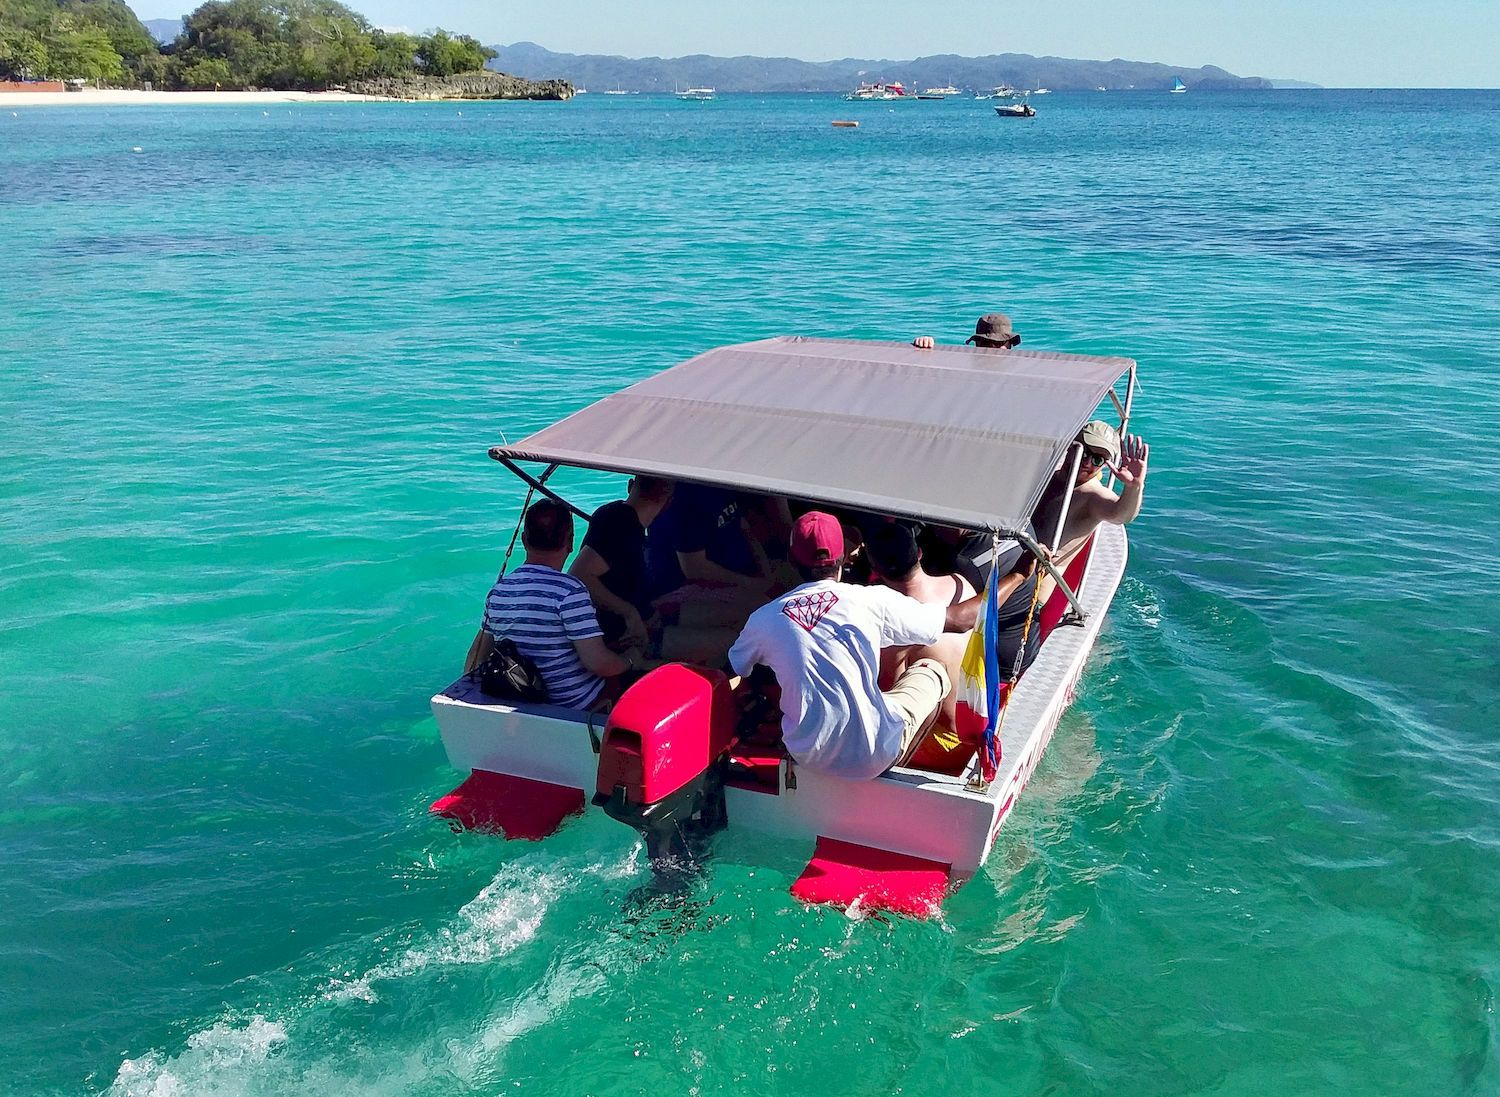 Going to boat rental boat island tour